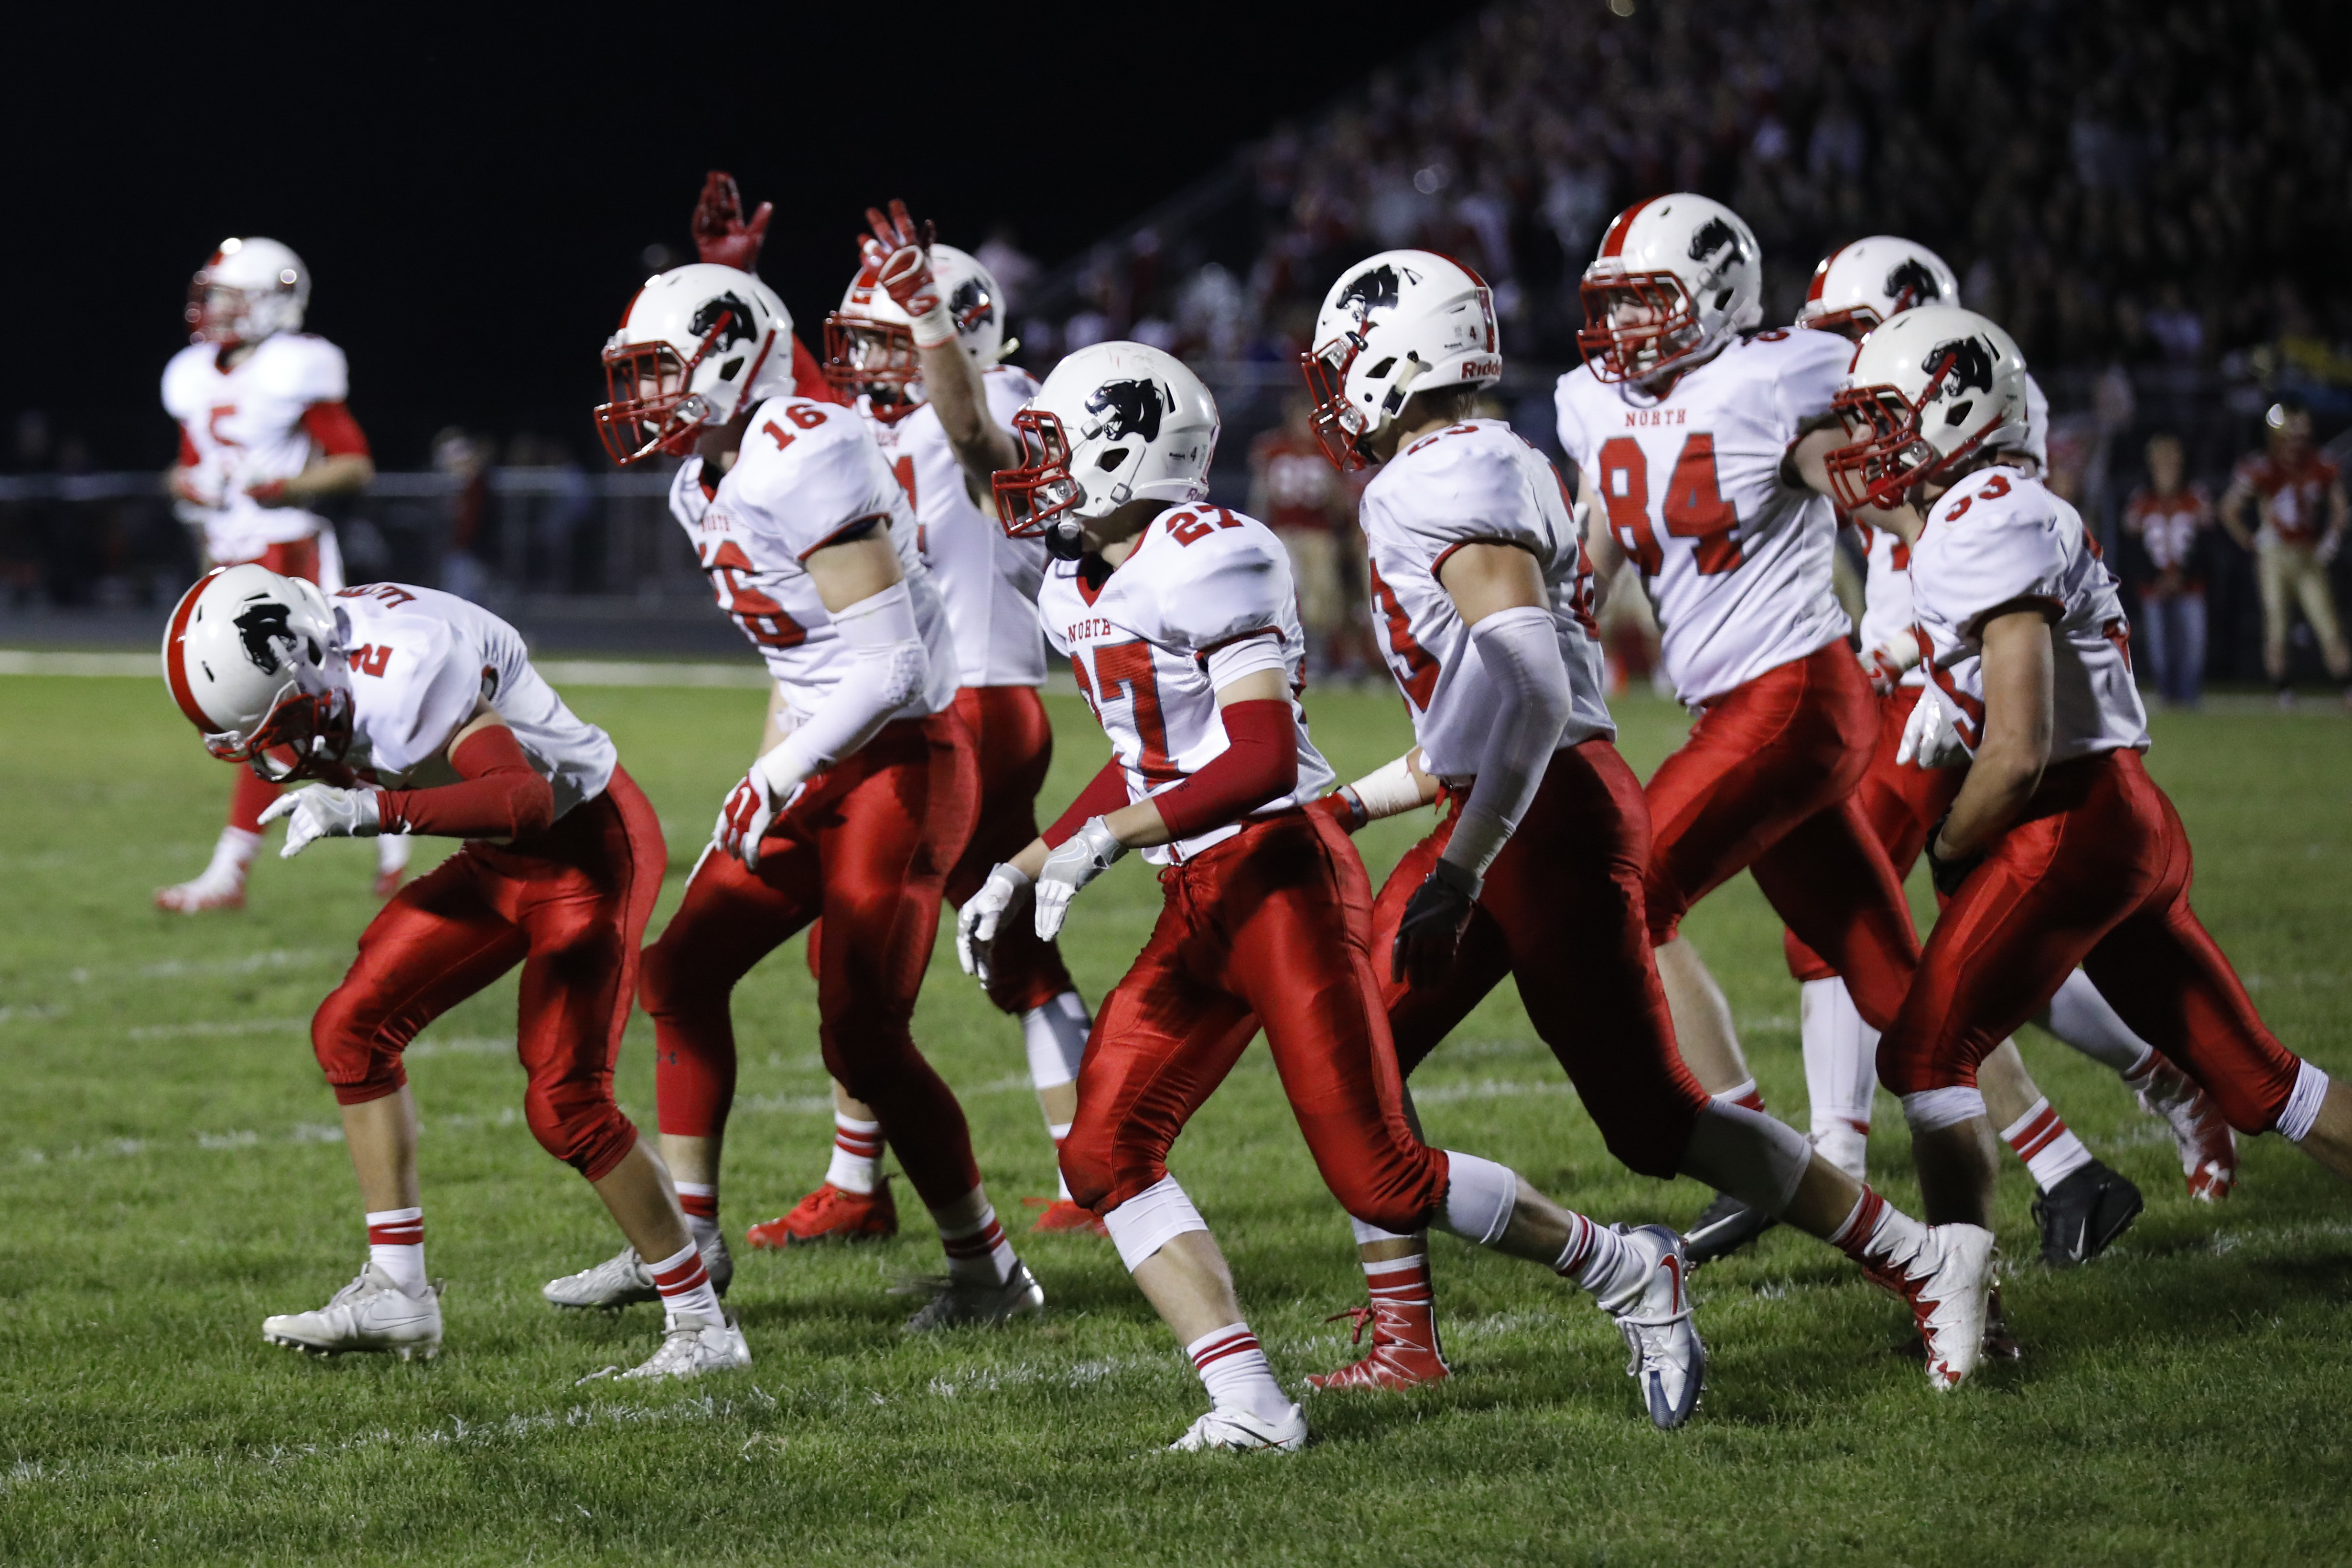 Lakeville North players celebrate on the field after Braden Walsh (16) intercepted a ball thrown by the Cougars quarterback. The Panthers defeated the Cougars 35-0 away. Photo by Chris Juhn